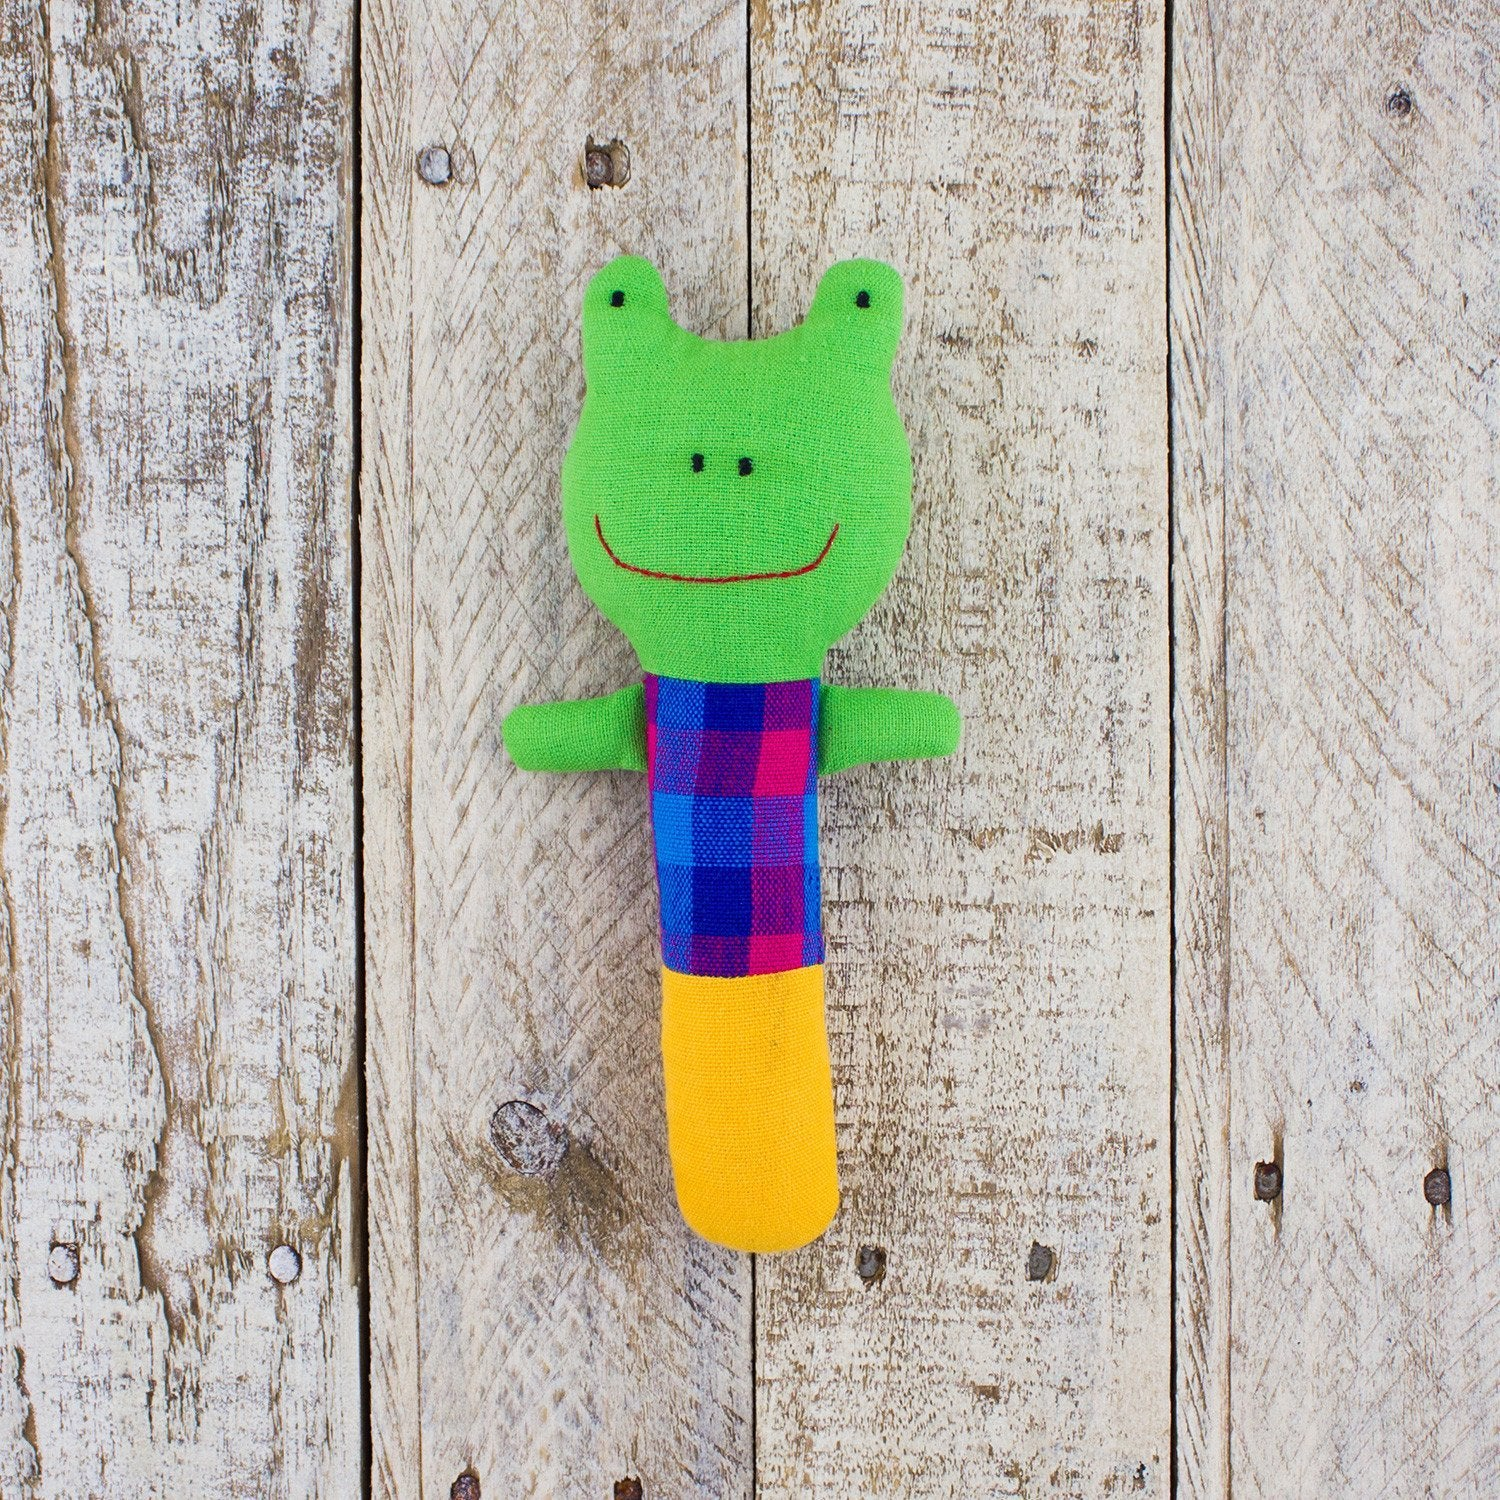 smiling frog shaped baby rattle with plaid shirt design on reclaimed wood tabletop